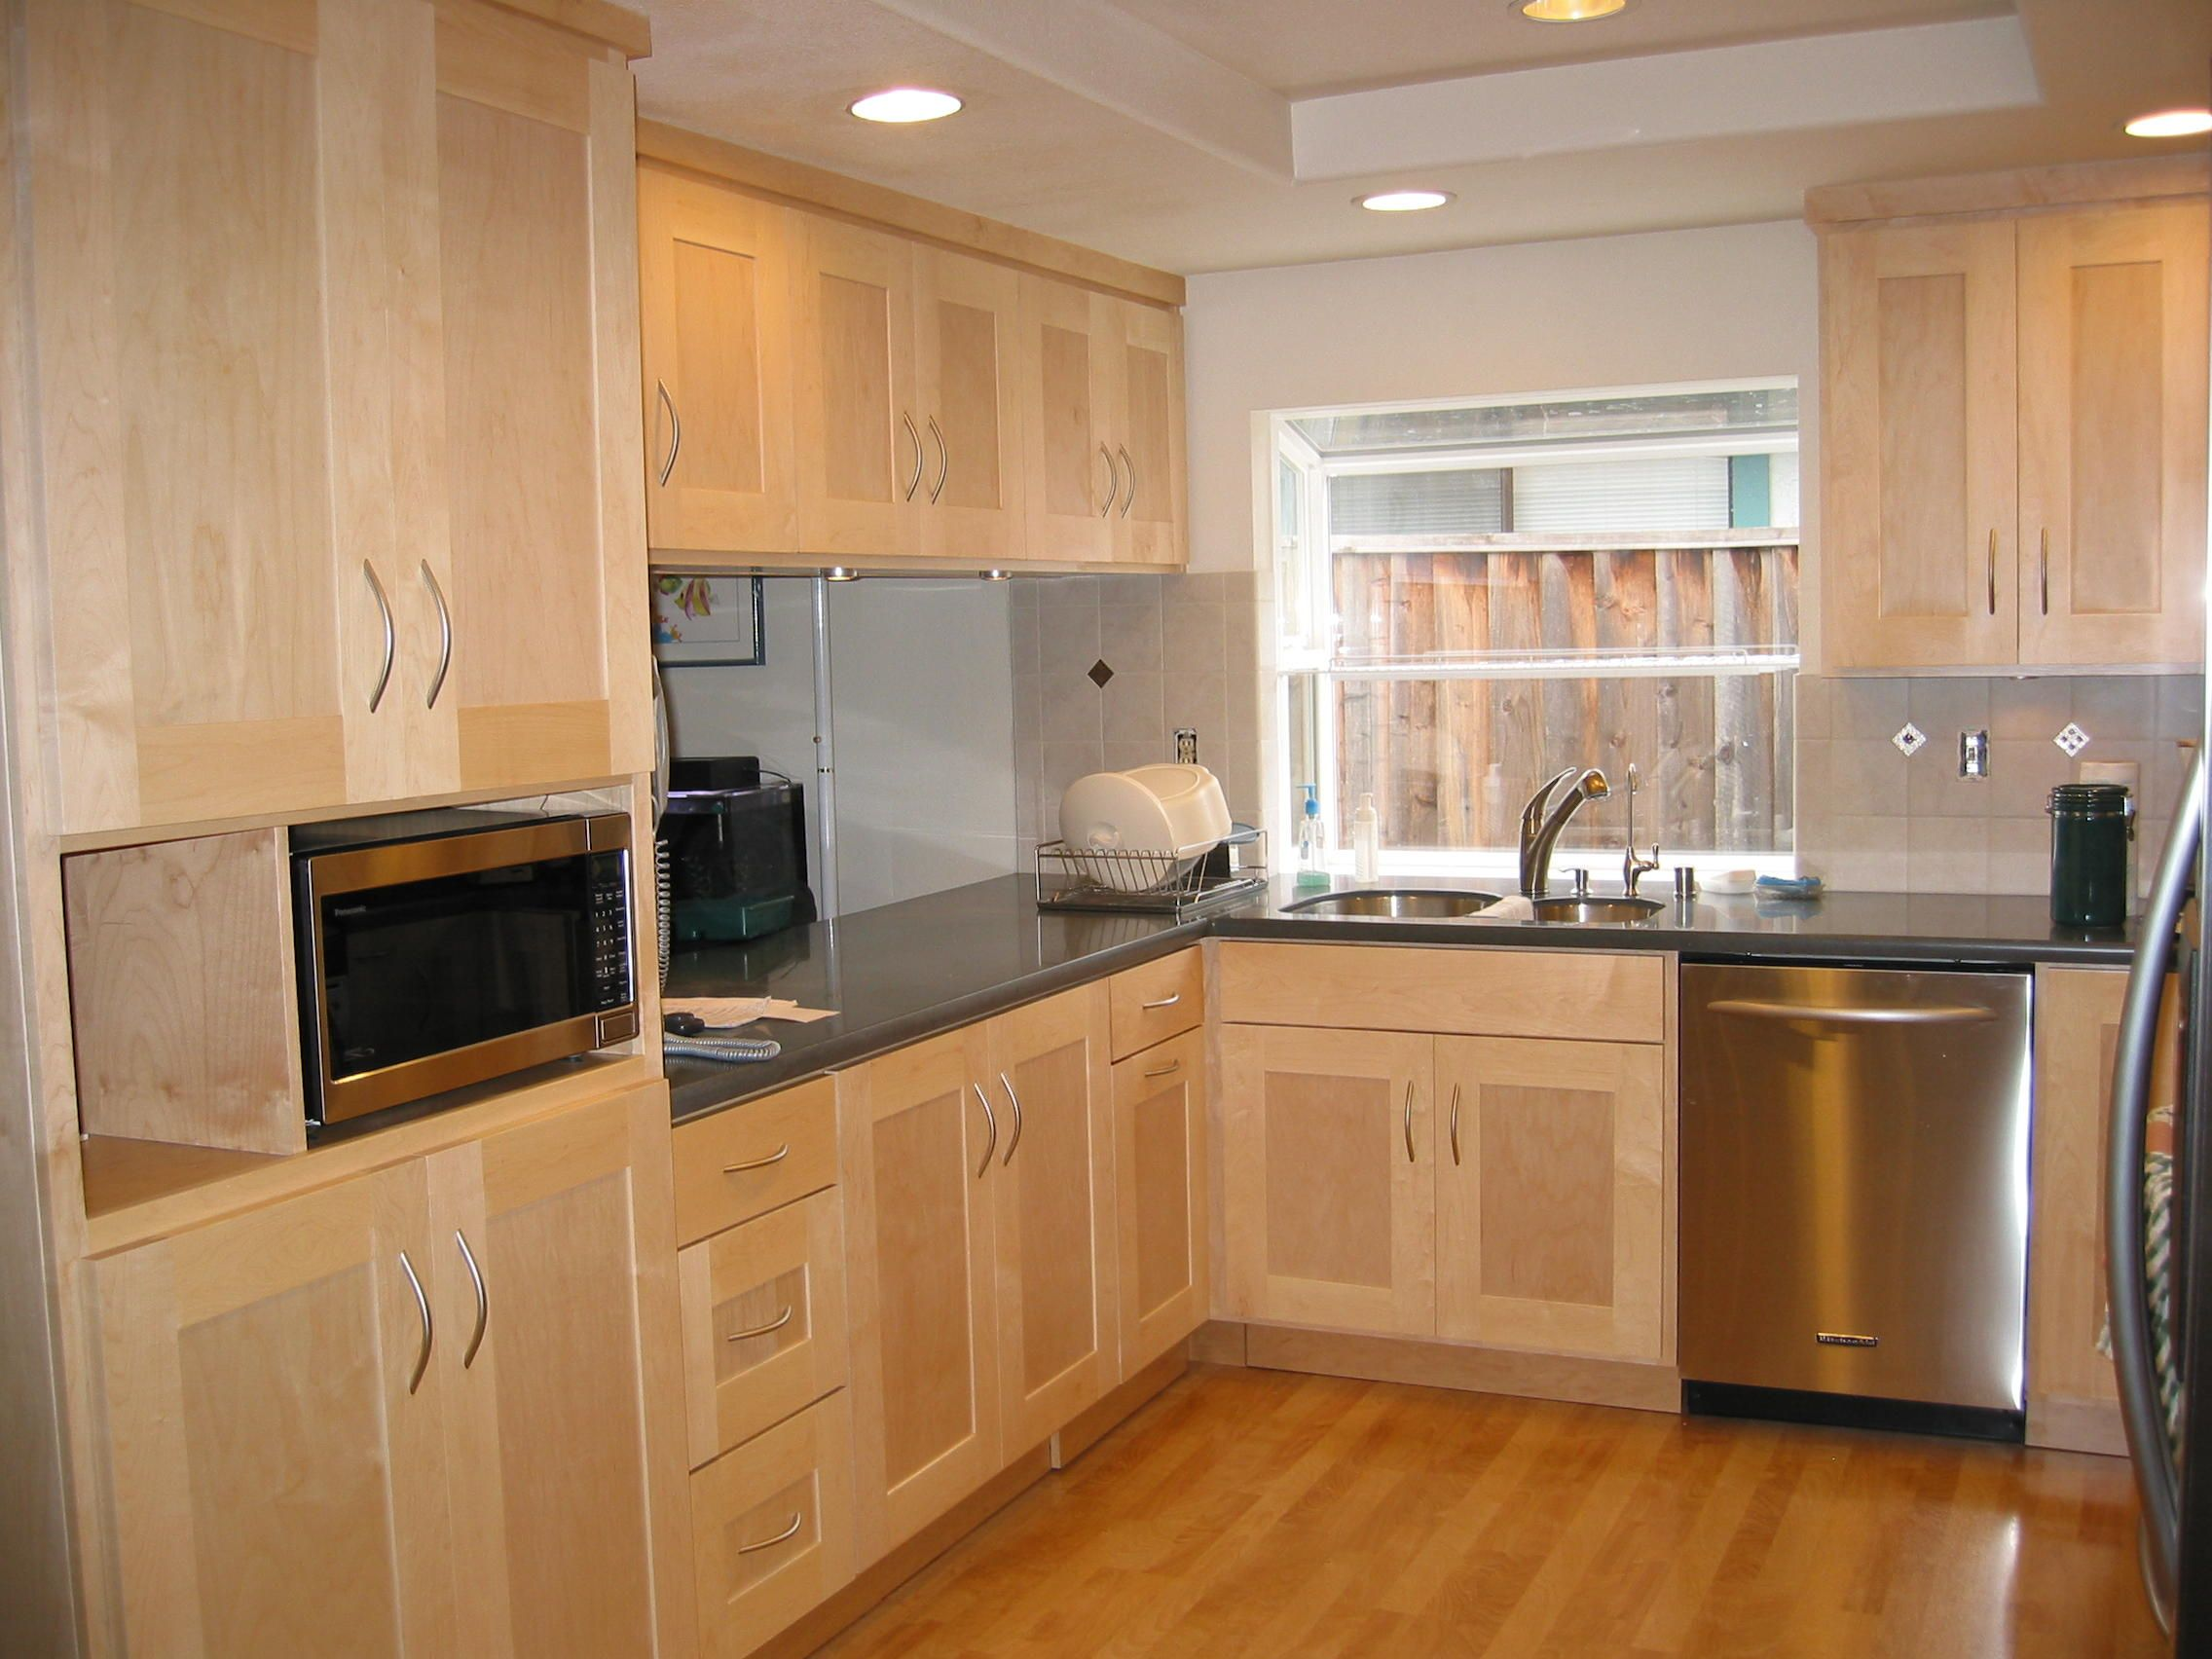 Niviya S Light Maple Shaker Cabinets Maple Kitchen Cabinets Natural Wood Kitchen Cabinets Best Kitchen Cabinets